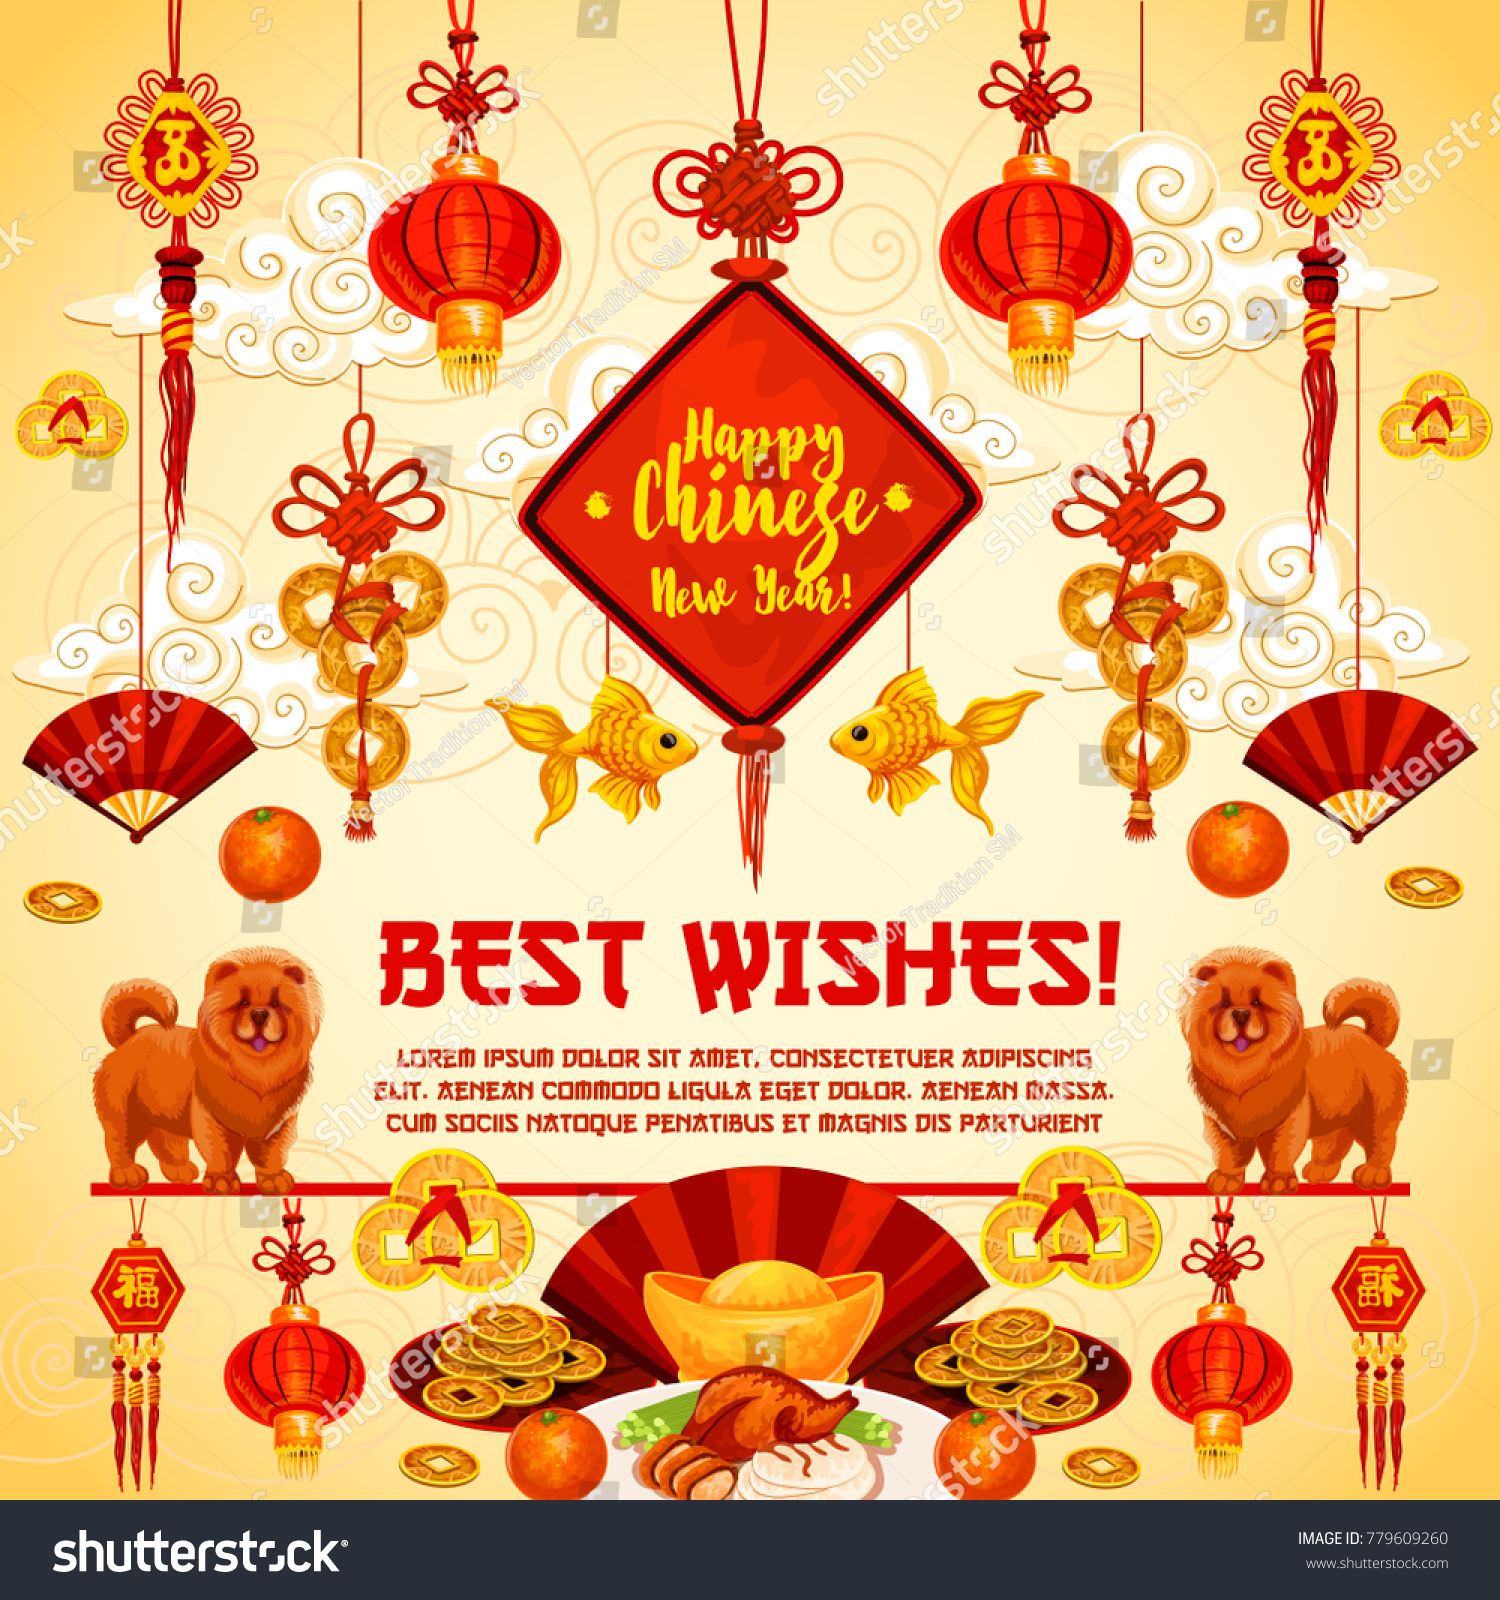 Happy chinese new year best wish stock vector 779609260 shutterstock happy chinese new year best wish greeting card for traditional china lunar new year holiday celebration buycottarizona Images